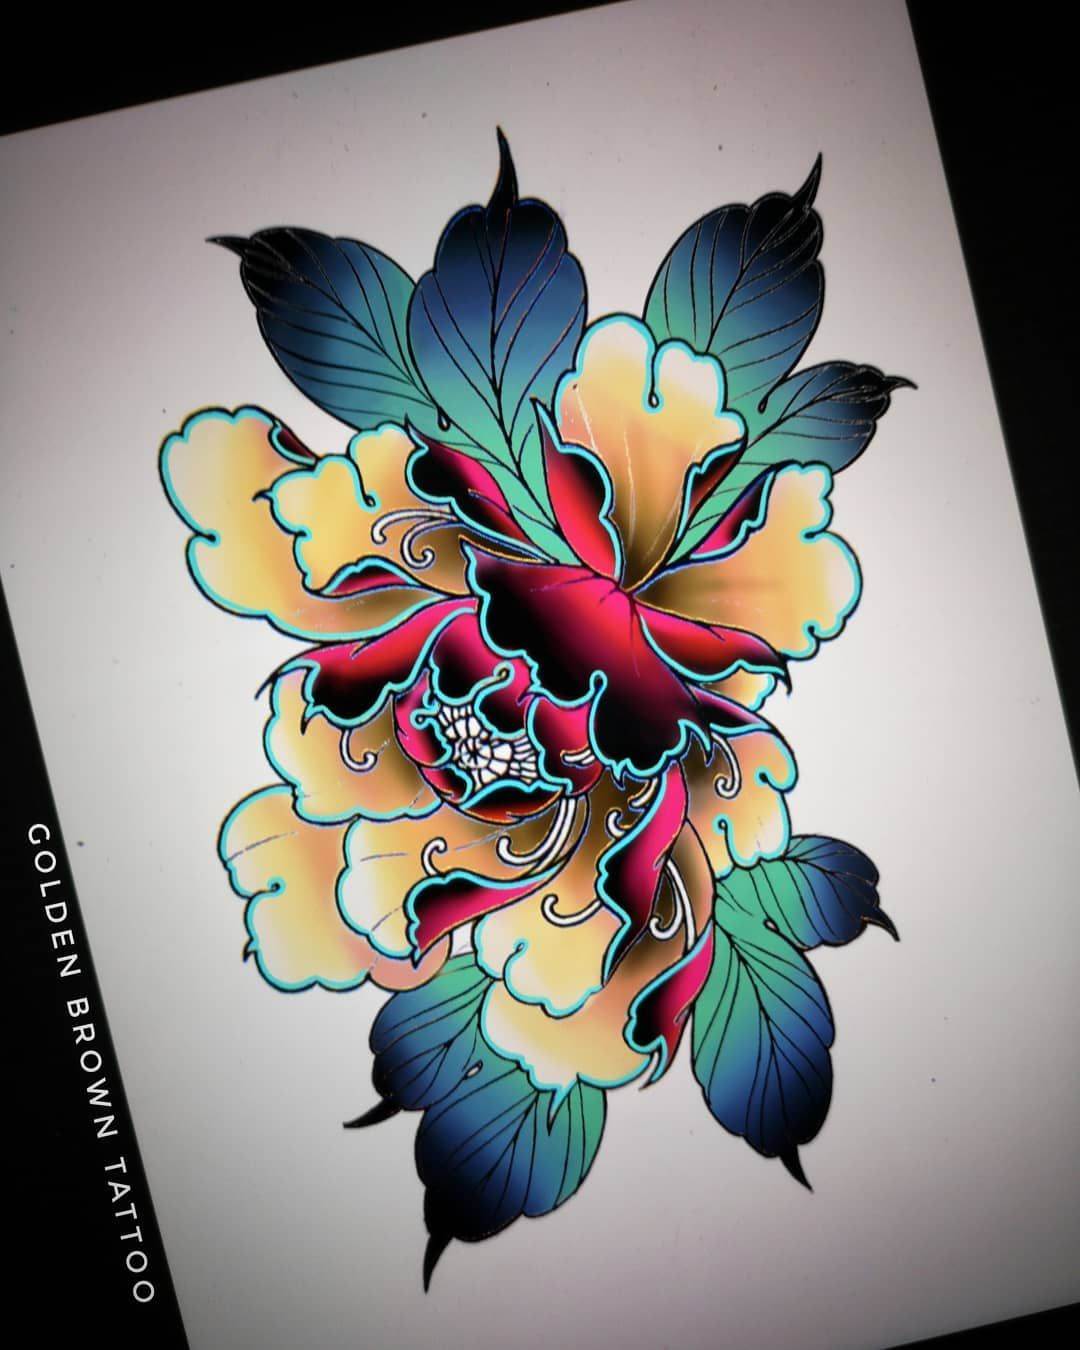 Golden Brown Tattoo On Instagram Available Dispo Pour Tattoo Peonytattoo Japanesetattoo Ire In 2020 Japanese Flower Tattoo Japanese Tattoo Japanese Tattoo Art